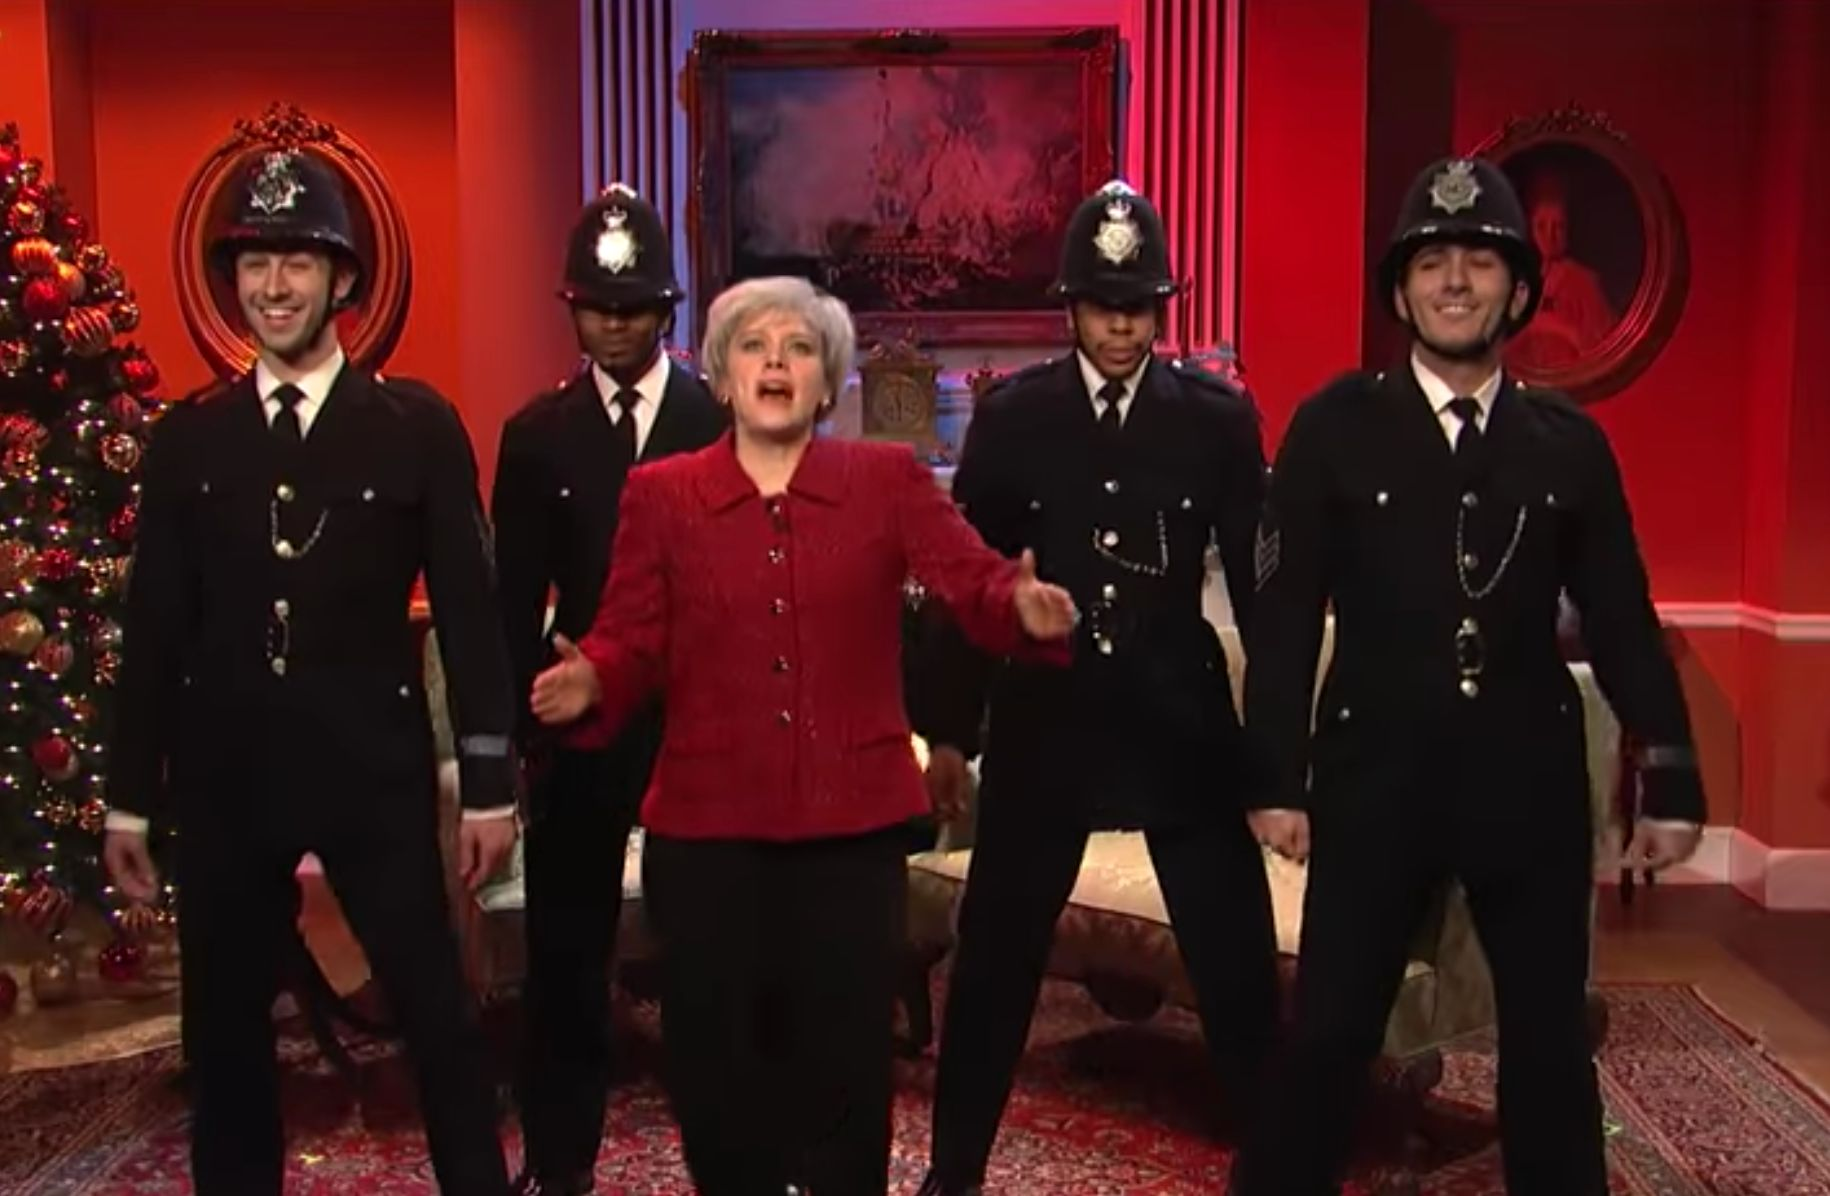 Saturday Night Live In America Mocks Theresa May Mercilessly In 'Happy Christmas, Britain'